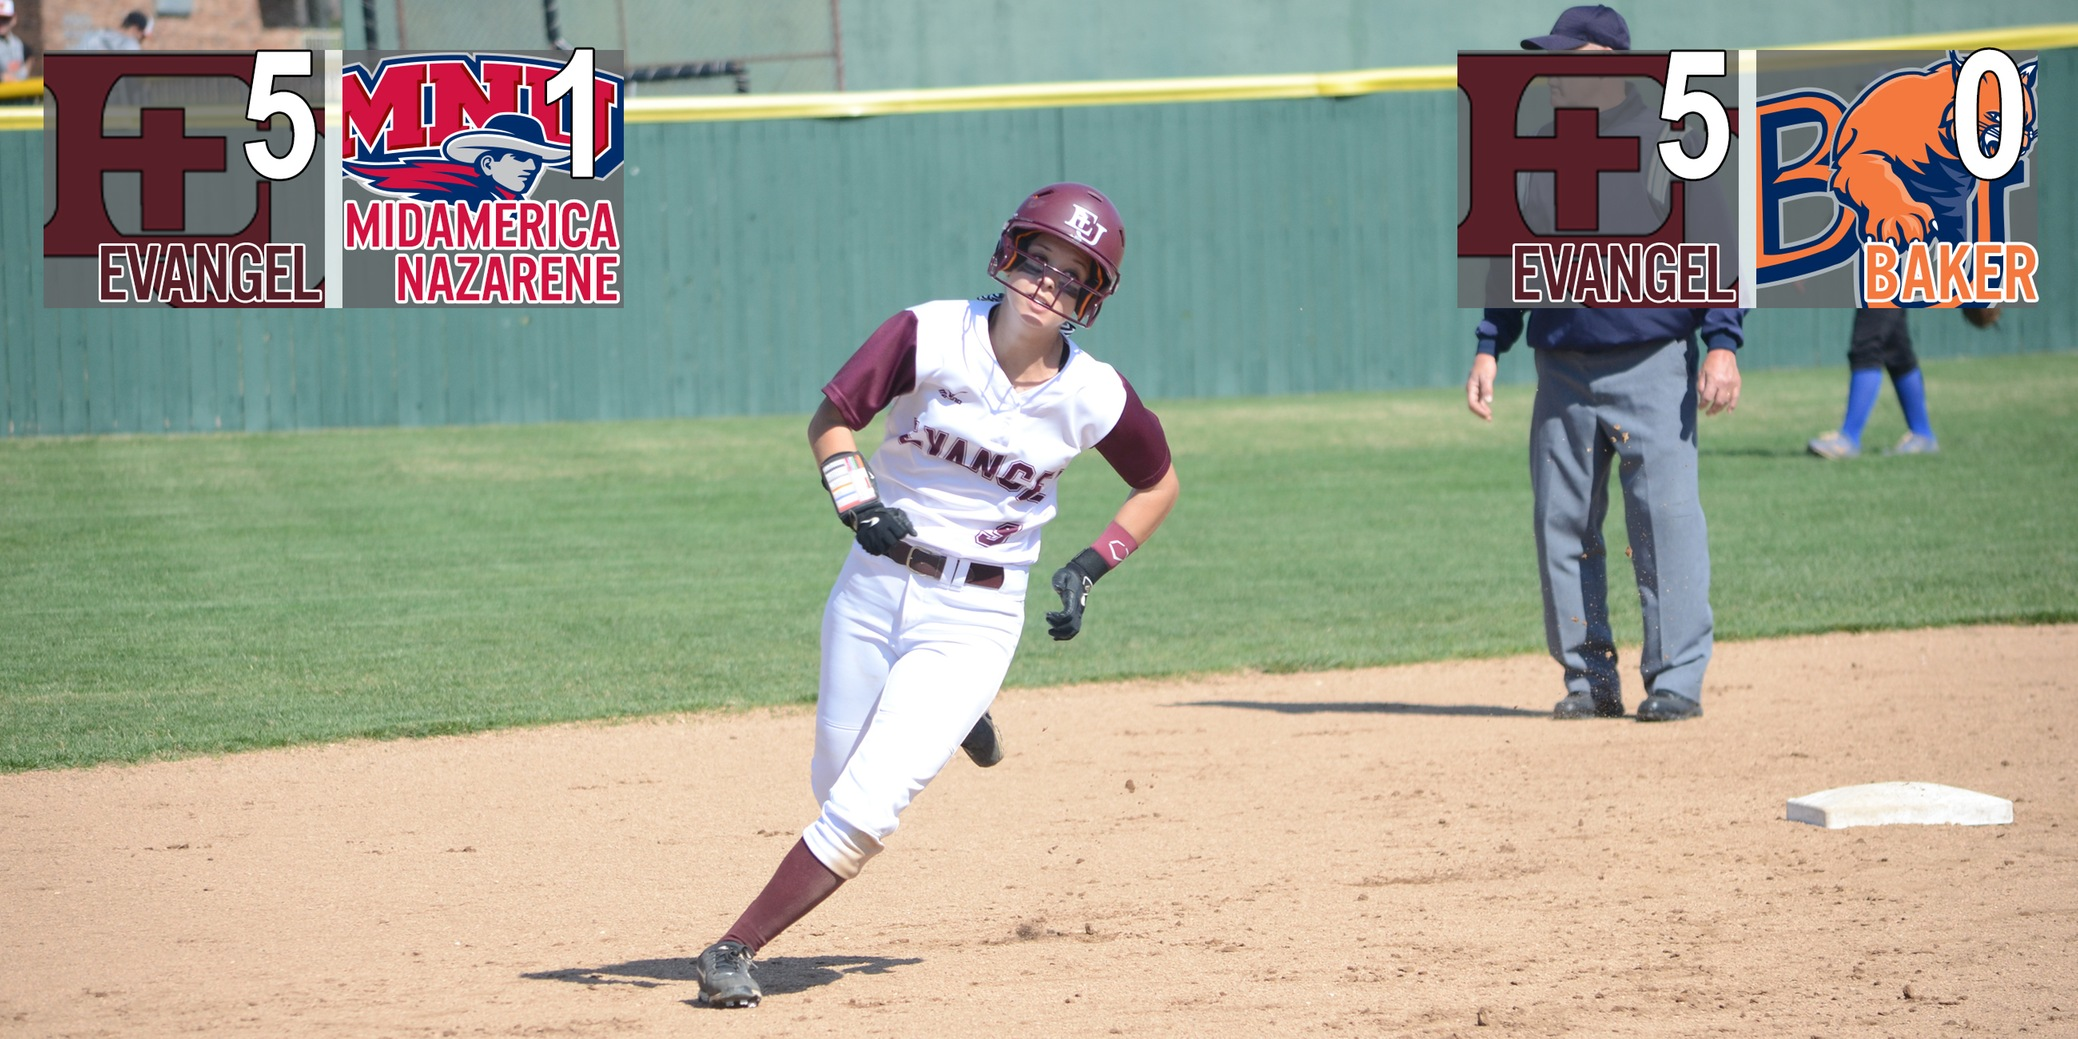 Defense and Pitching Lead Evangel to Pair of Wins at Heart Softball Tournament